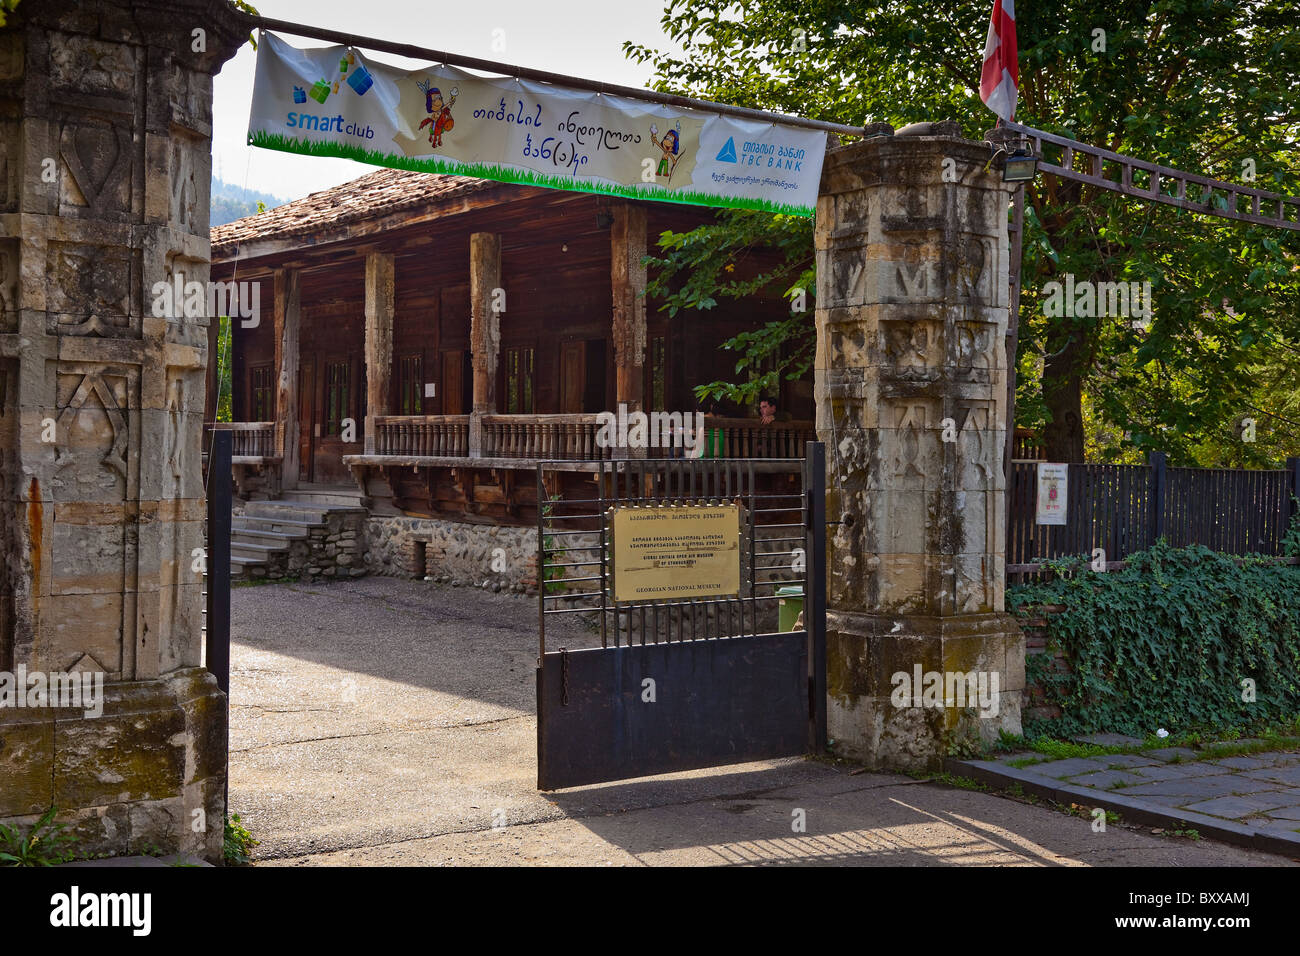 Entrance to the Giorgi Chitaia Open Air Museum of Ethnography, Tbilisi, Georgia. JMH4092 - Stock Image